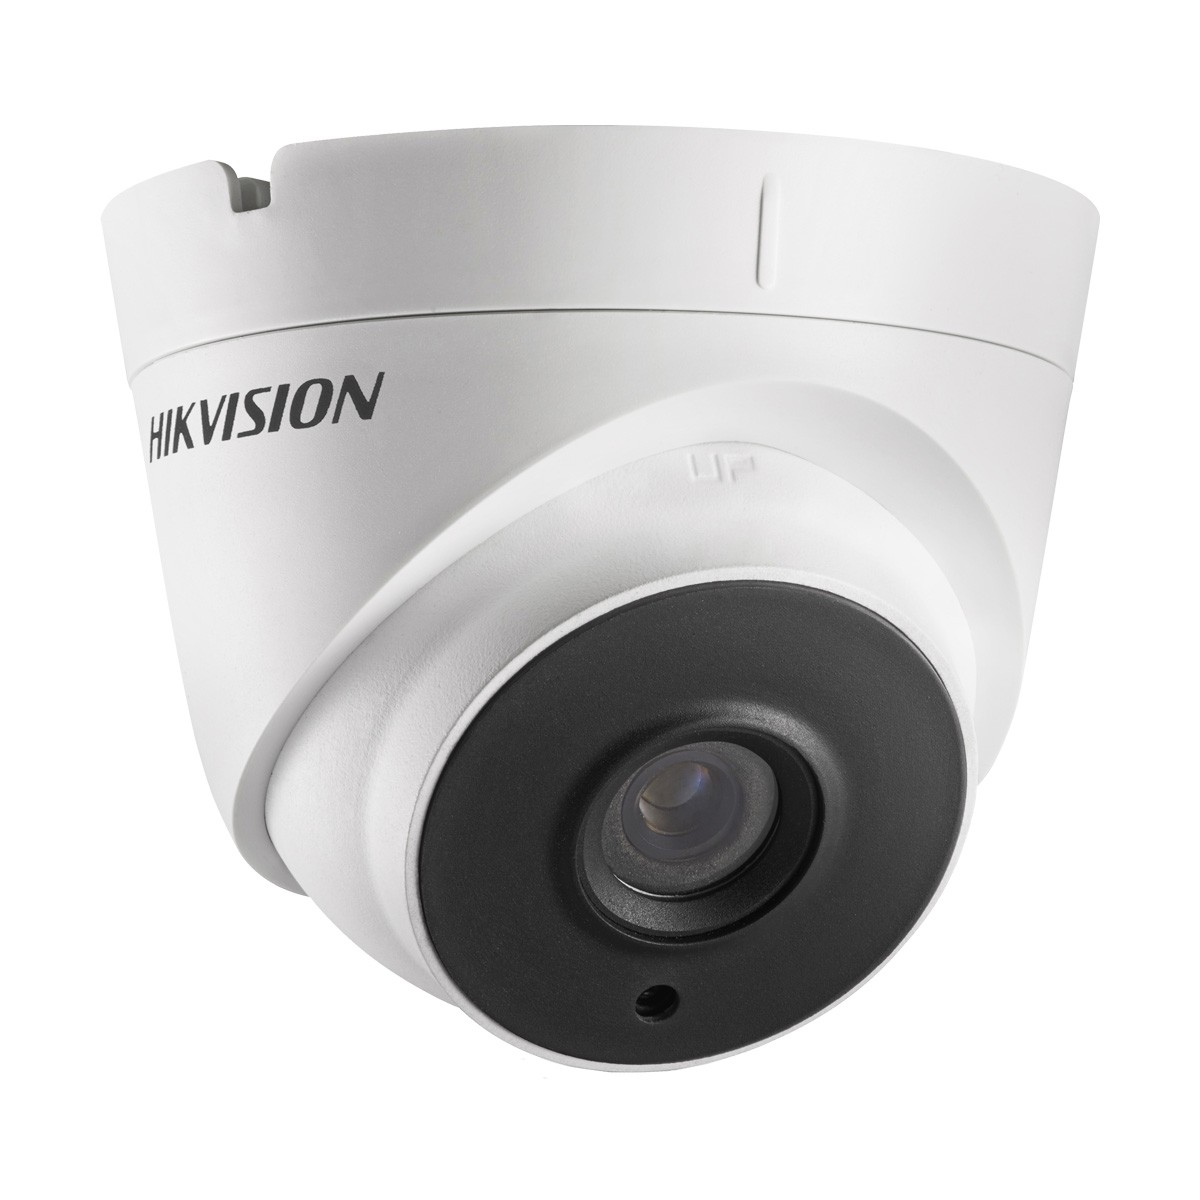 2 MP Hikvision Dome CCTV Camera | DS-2CE56D0T-IT3F | 40 Meter IR